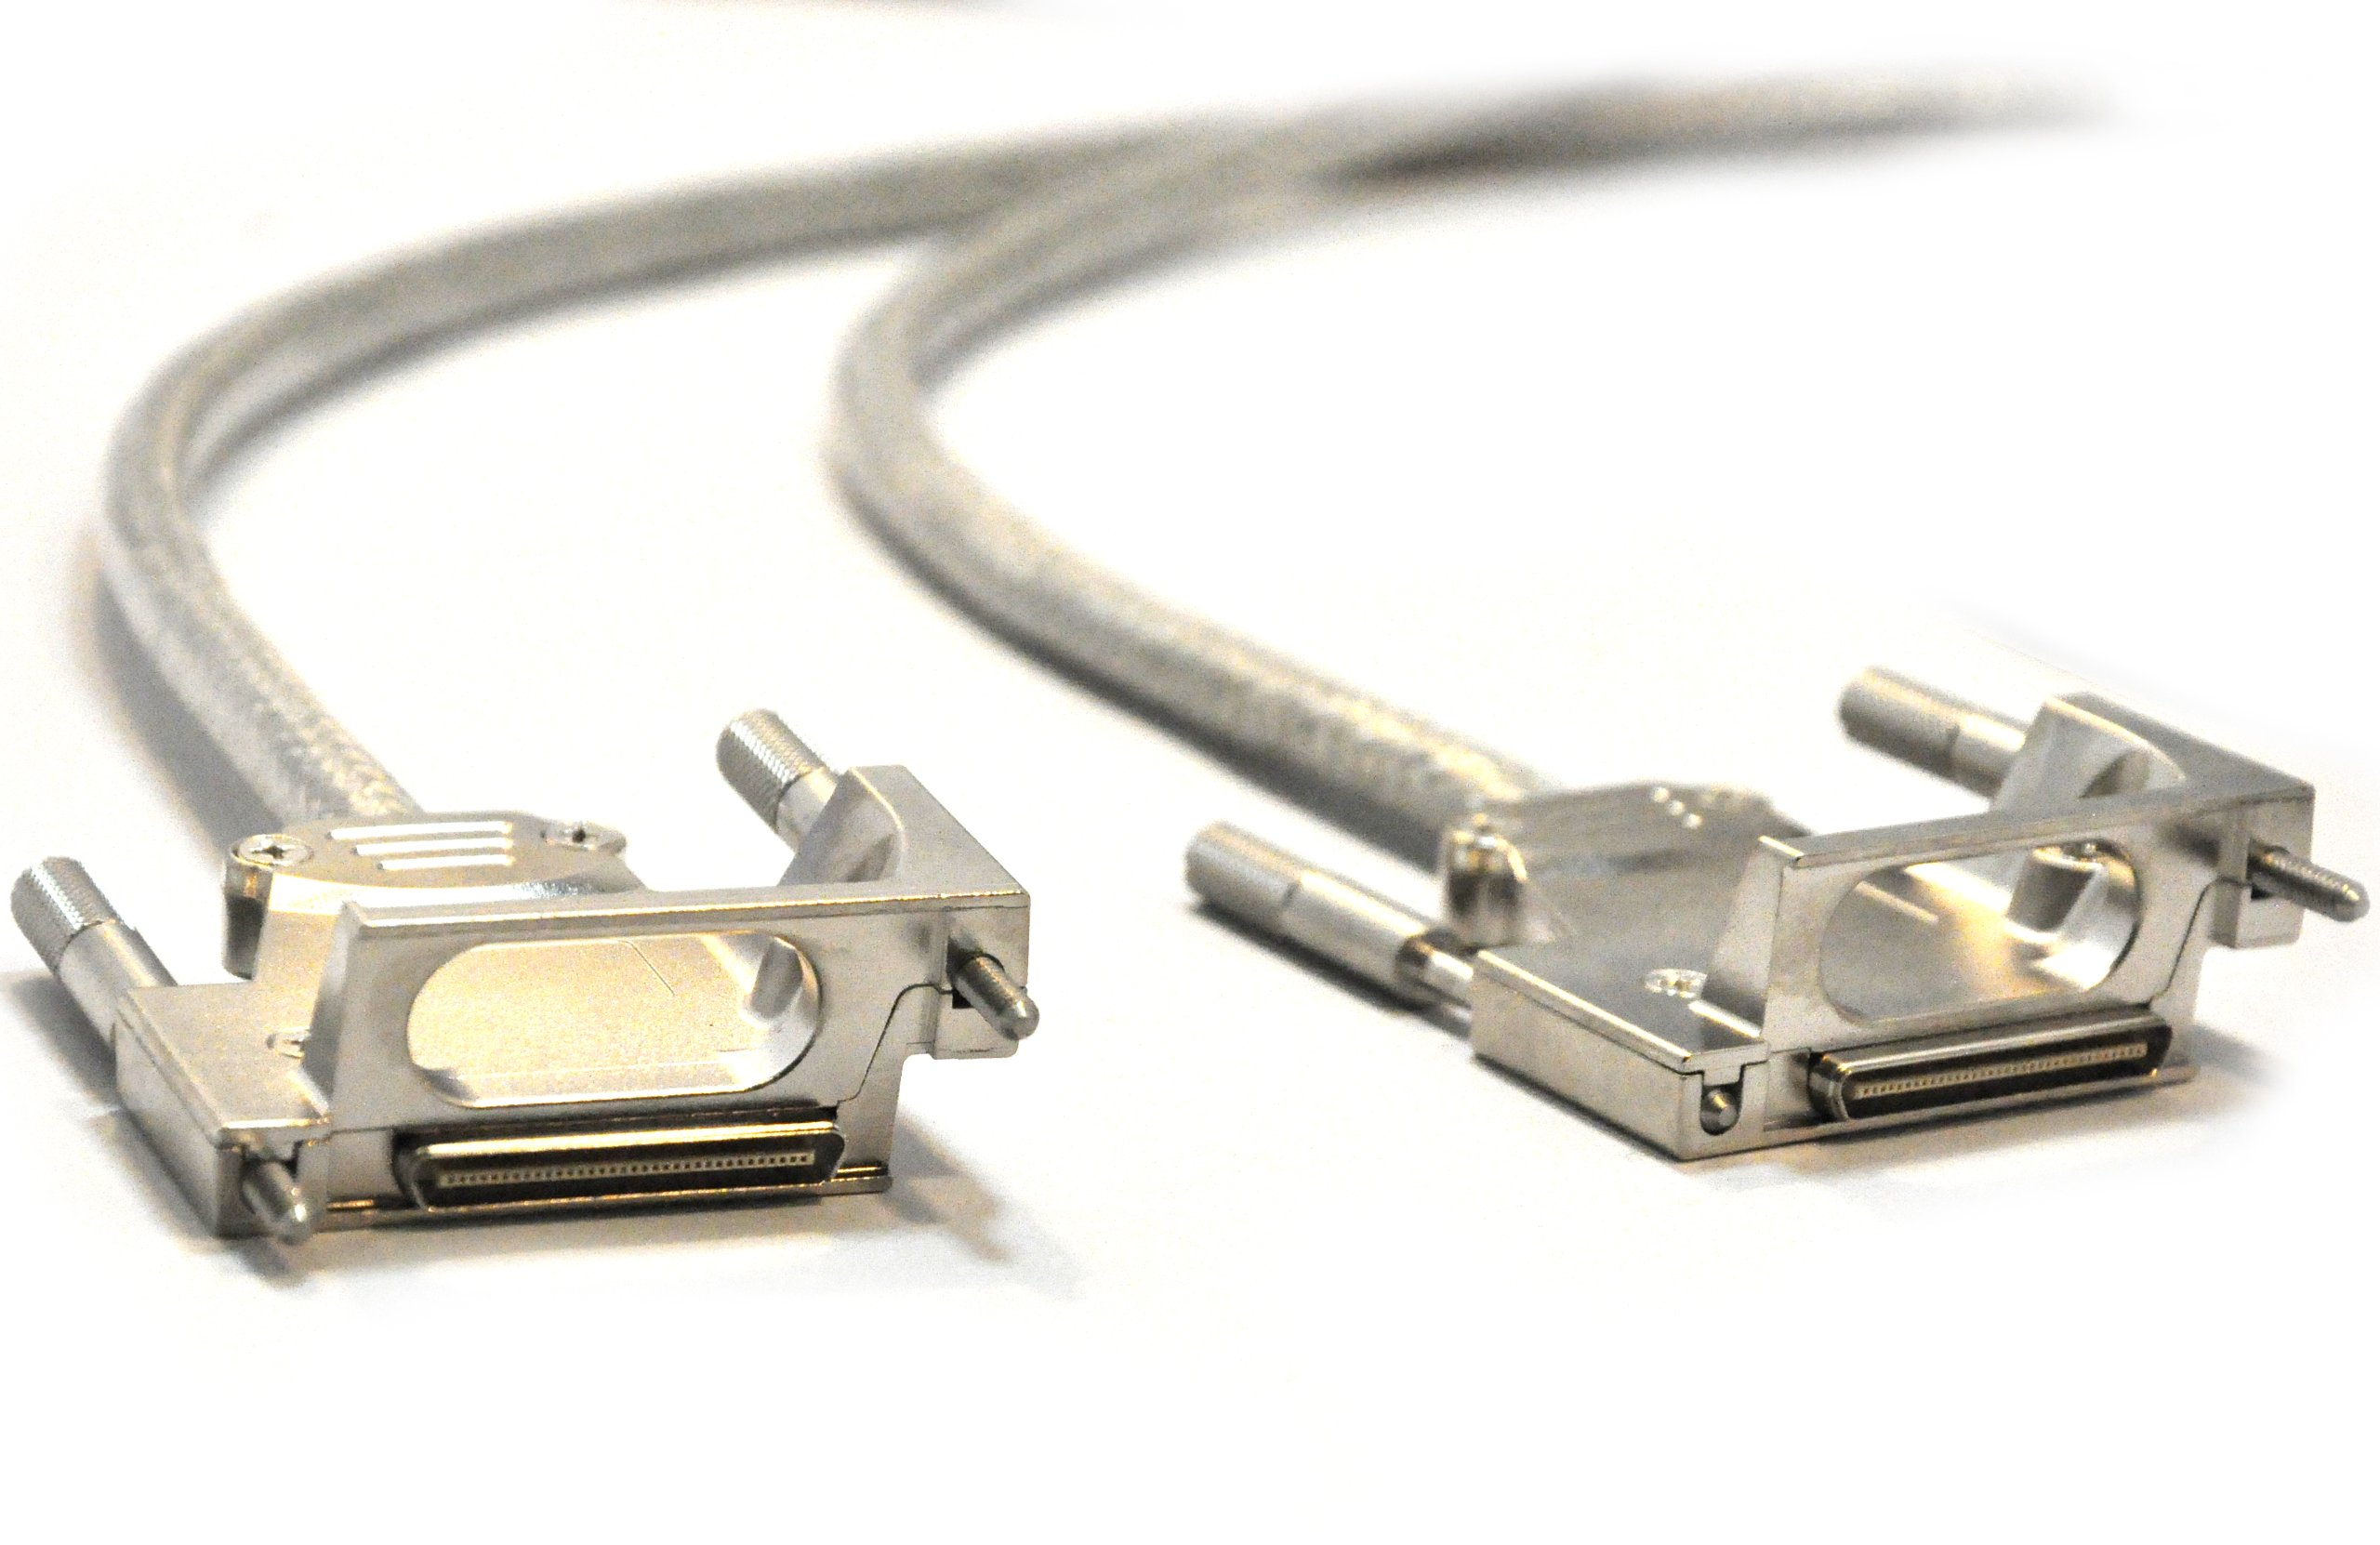 Cisco CAB-STACK-3M StackWise 3 Meter Stacking Cable by Cisco Systems